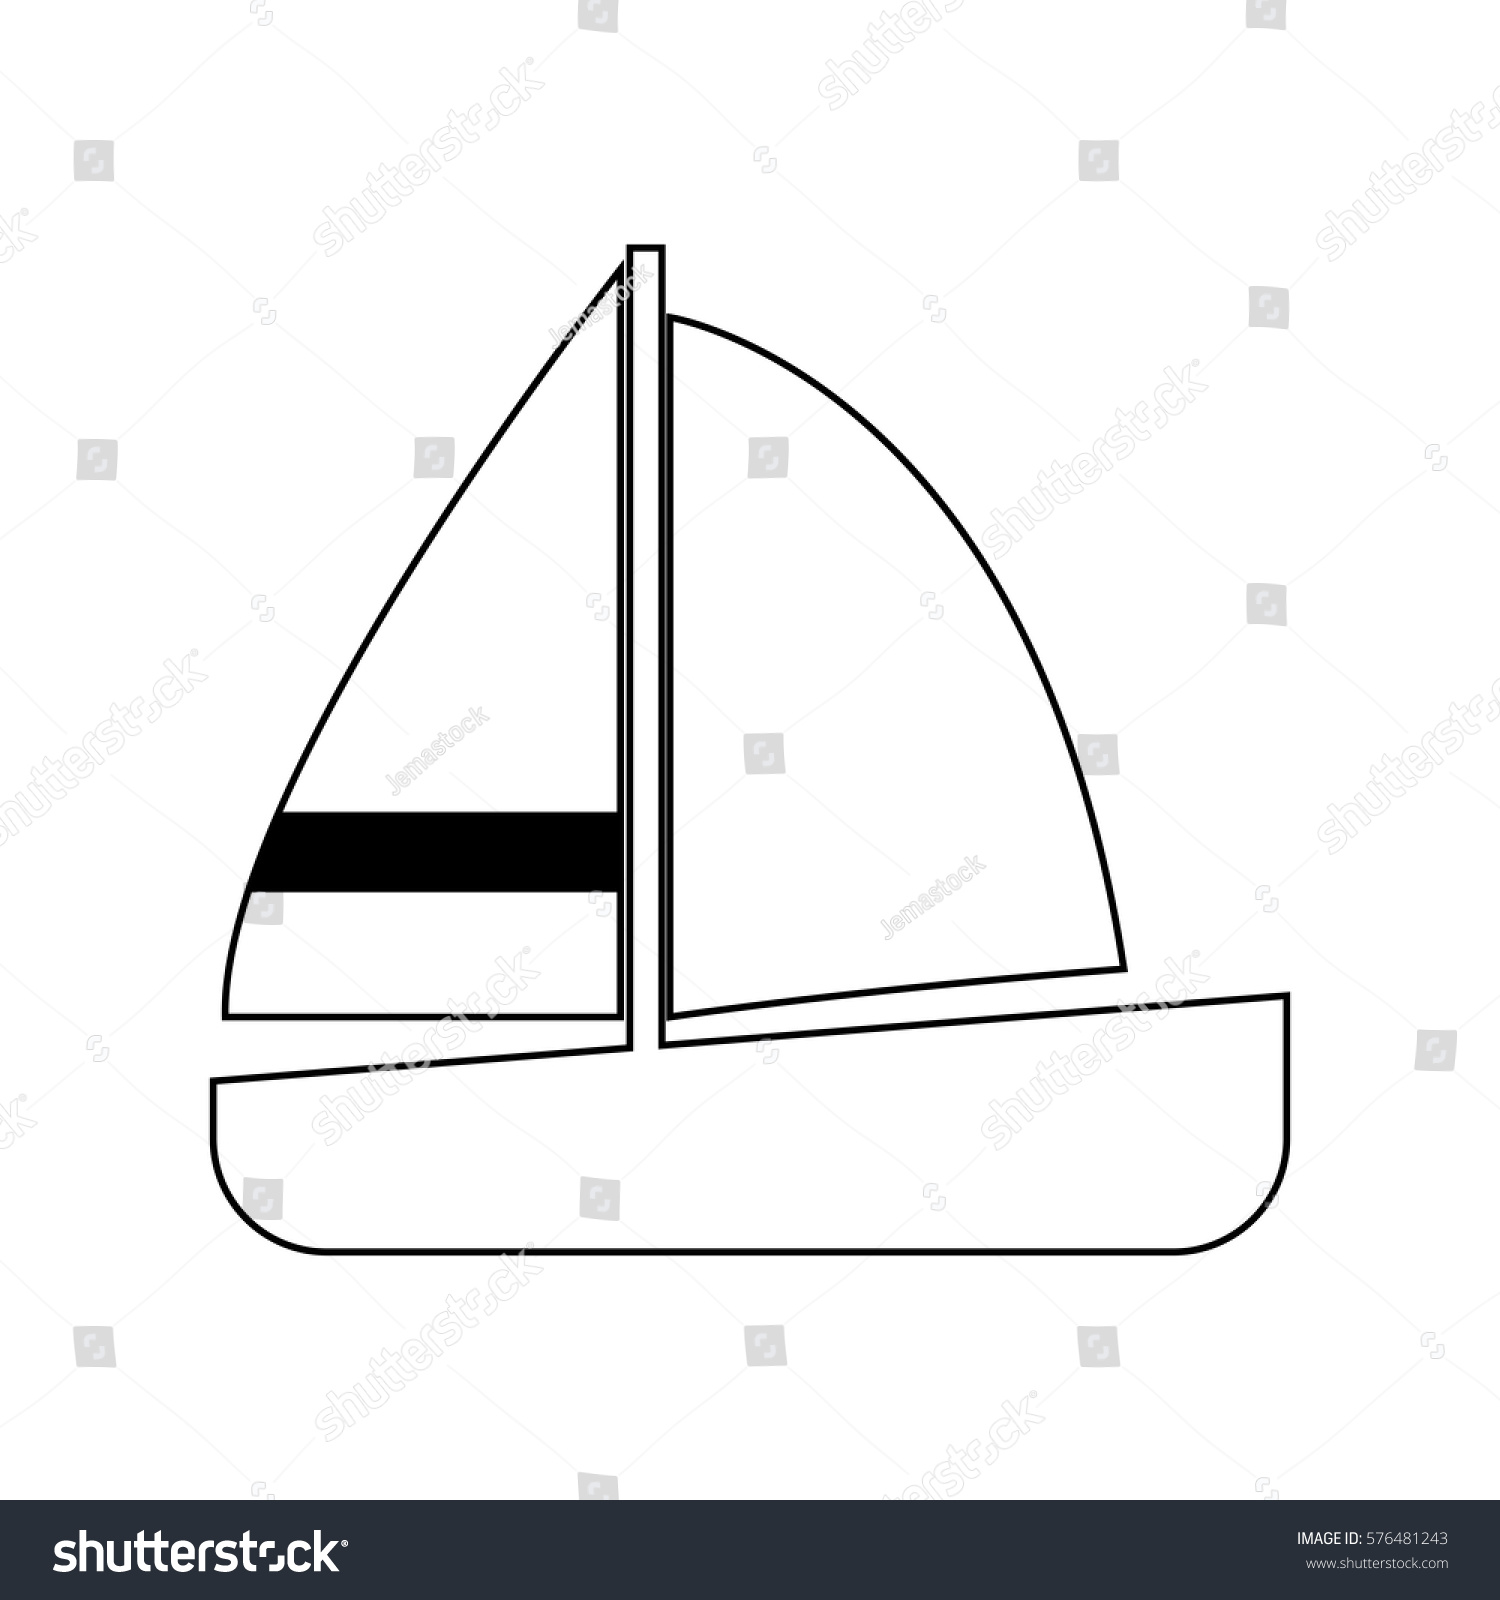 hight resolution of keelboat diagram